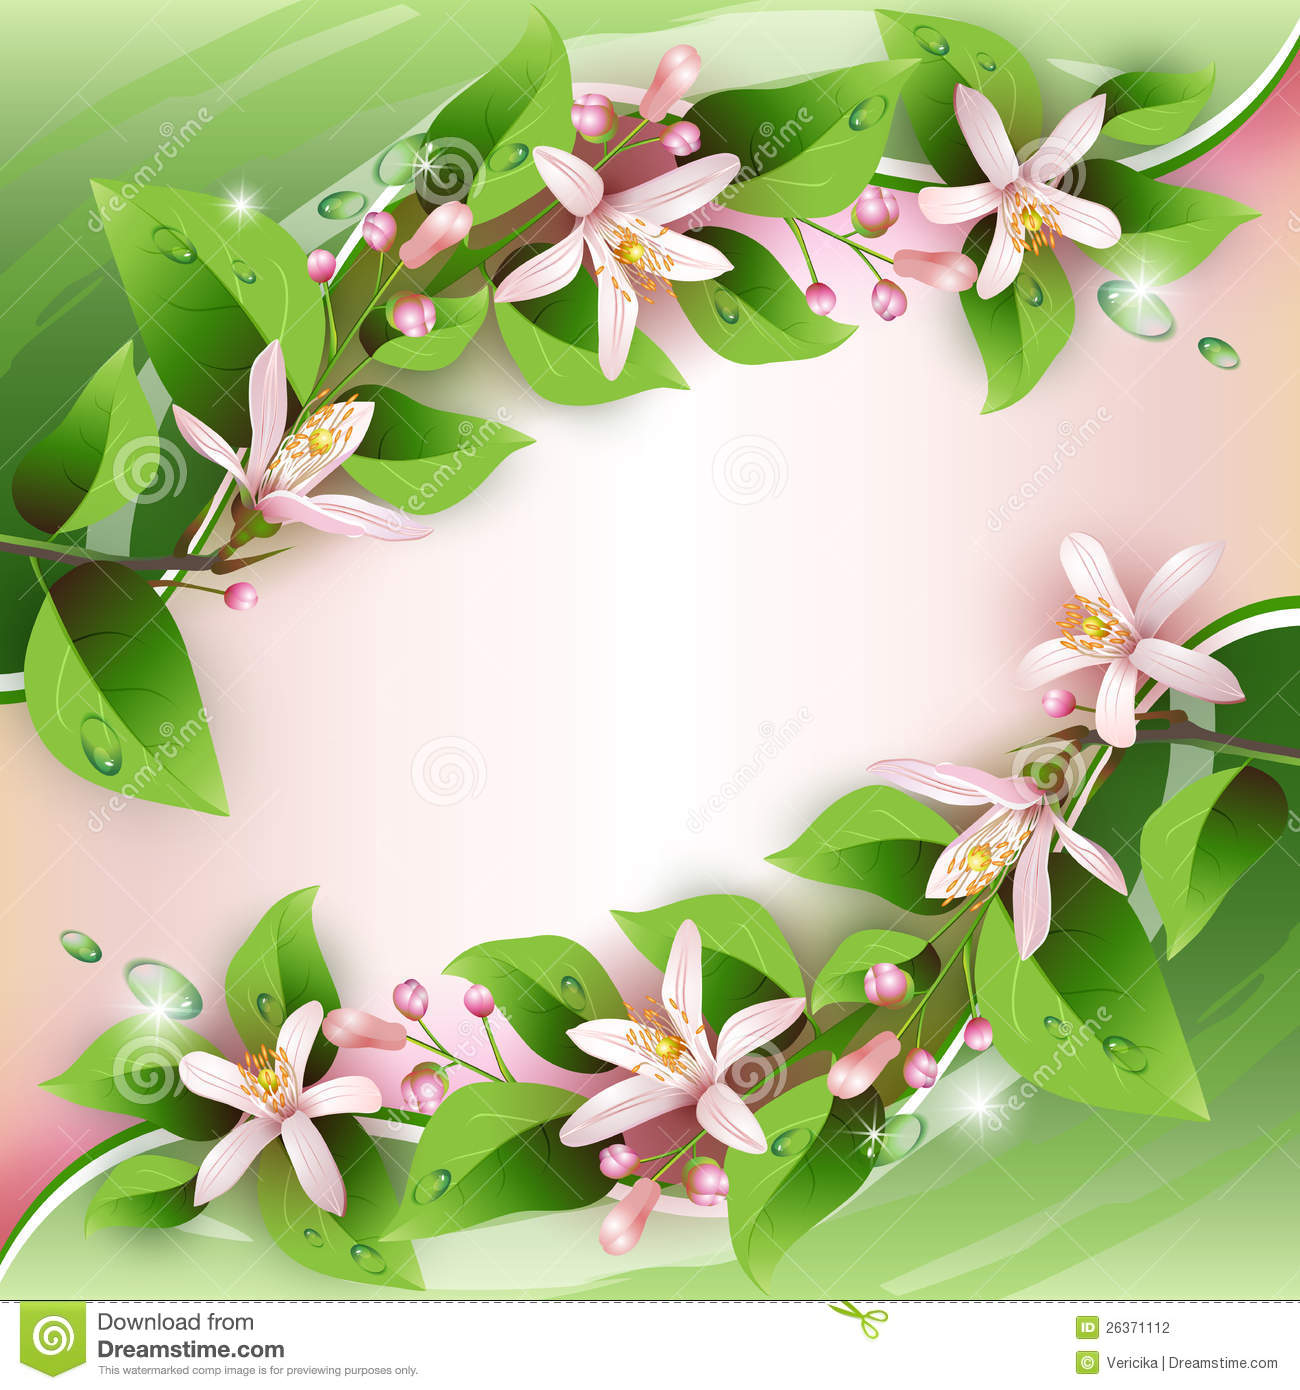 Clipart Flower Tree